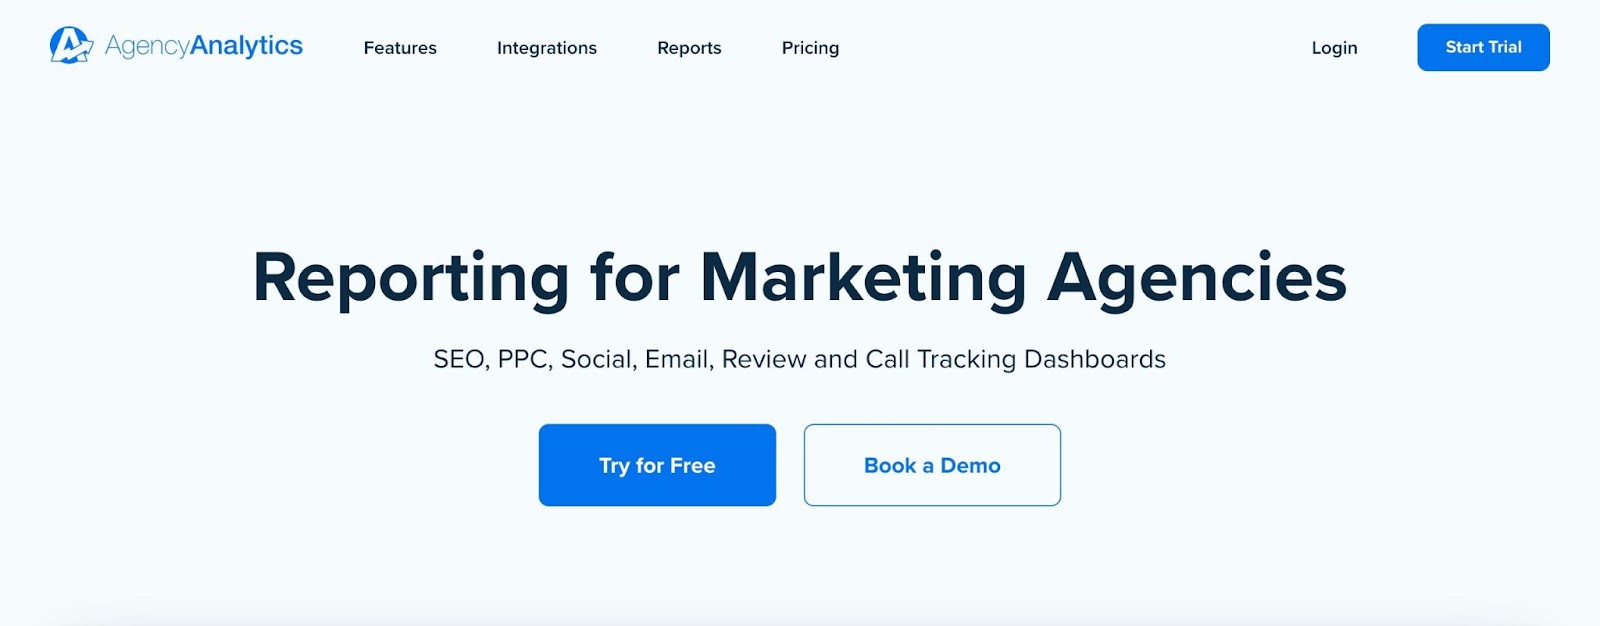 AgencyAnalytics homepage: Reporting for Marketing Agencies